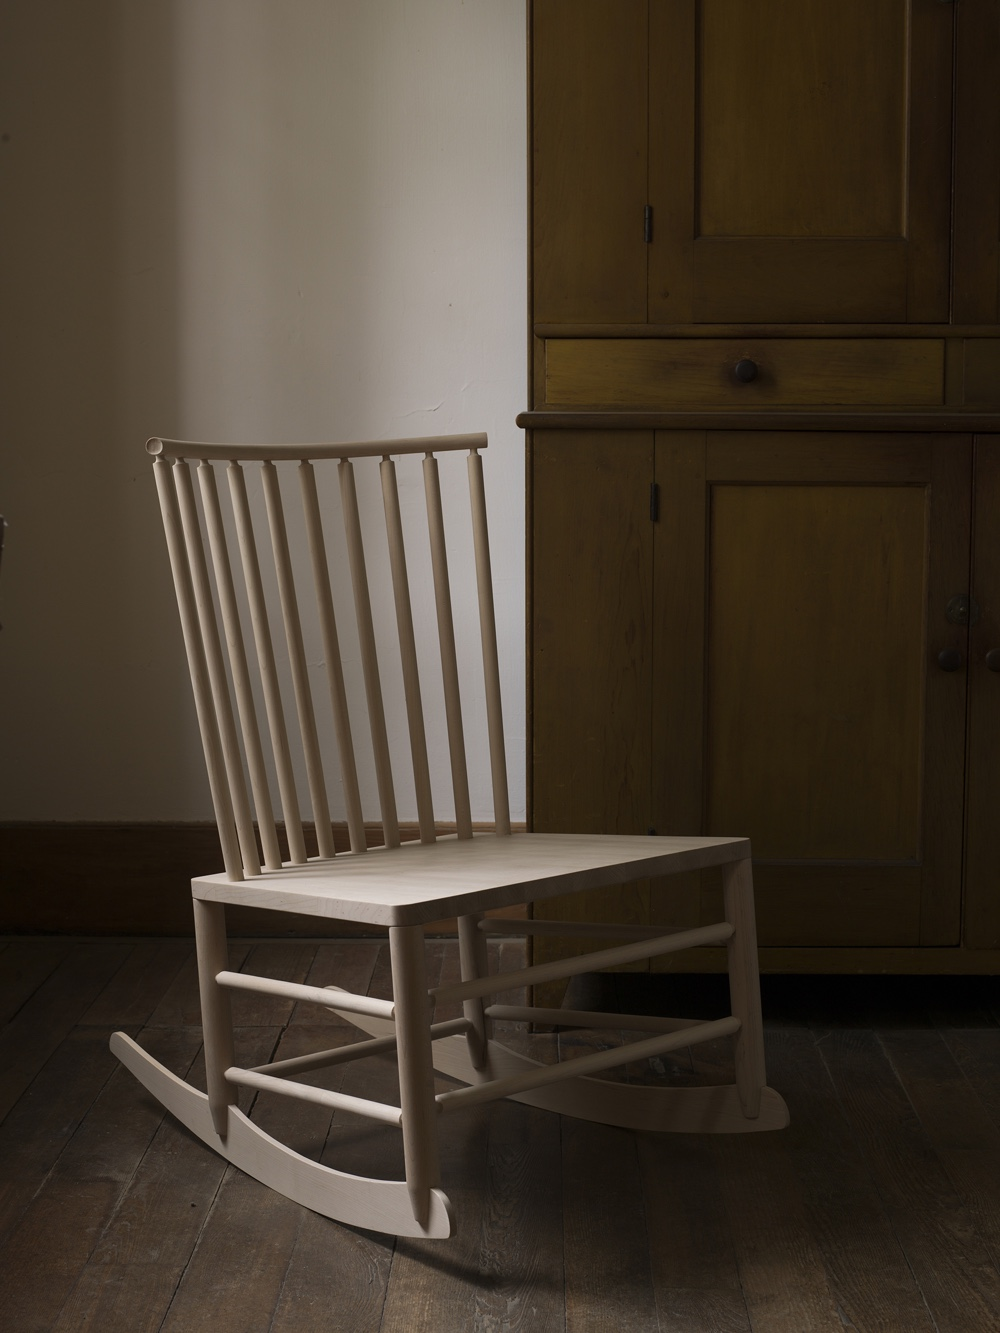 Shaker Rocker by Studio Gorm. Photo by Charlie Schuck via Studio Gorm.